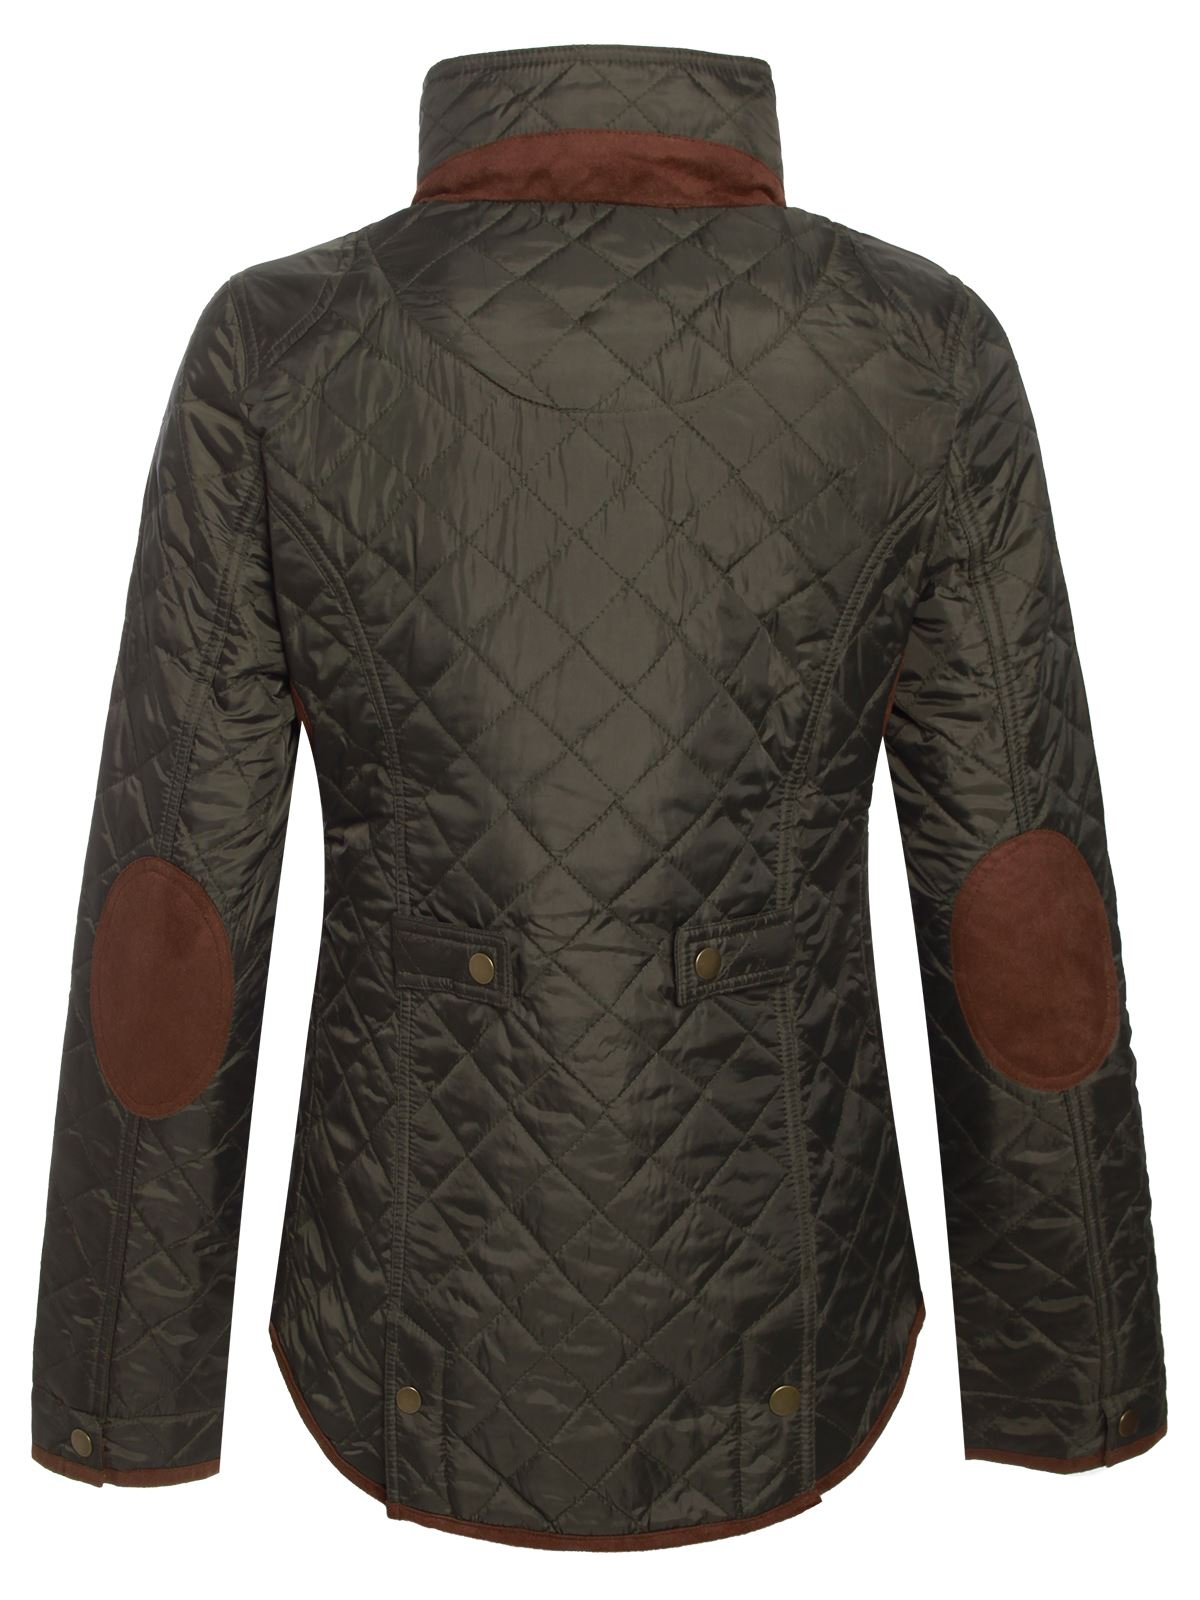 Women's quilted riding jacket